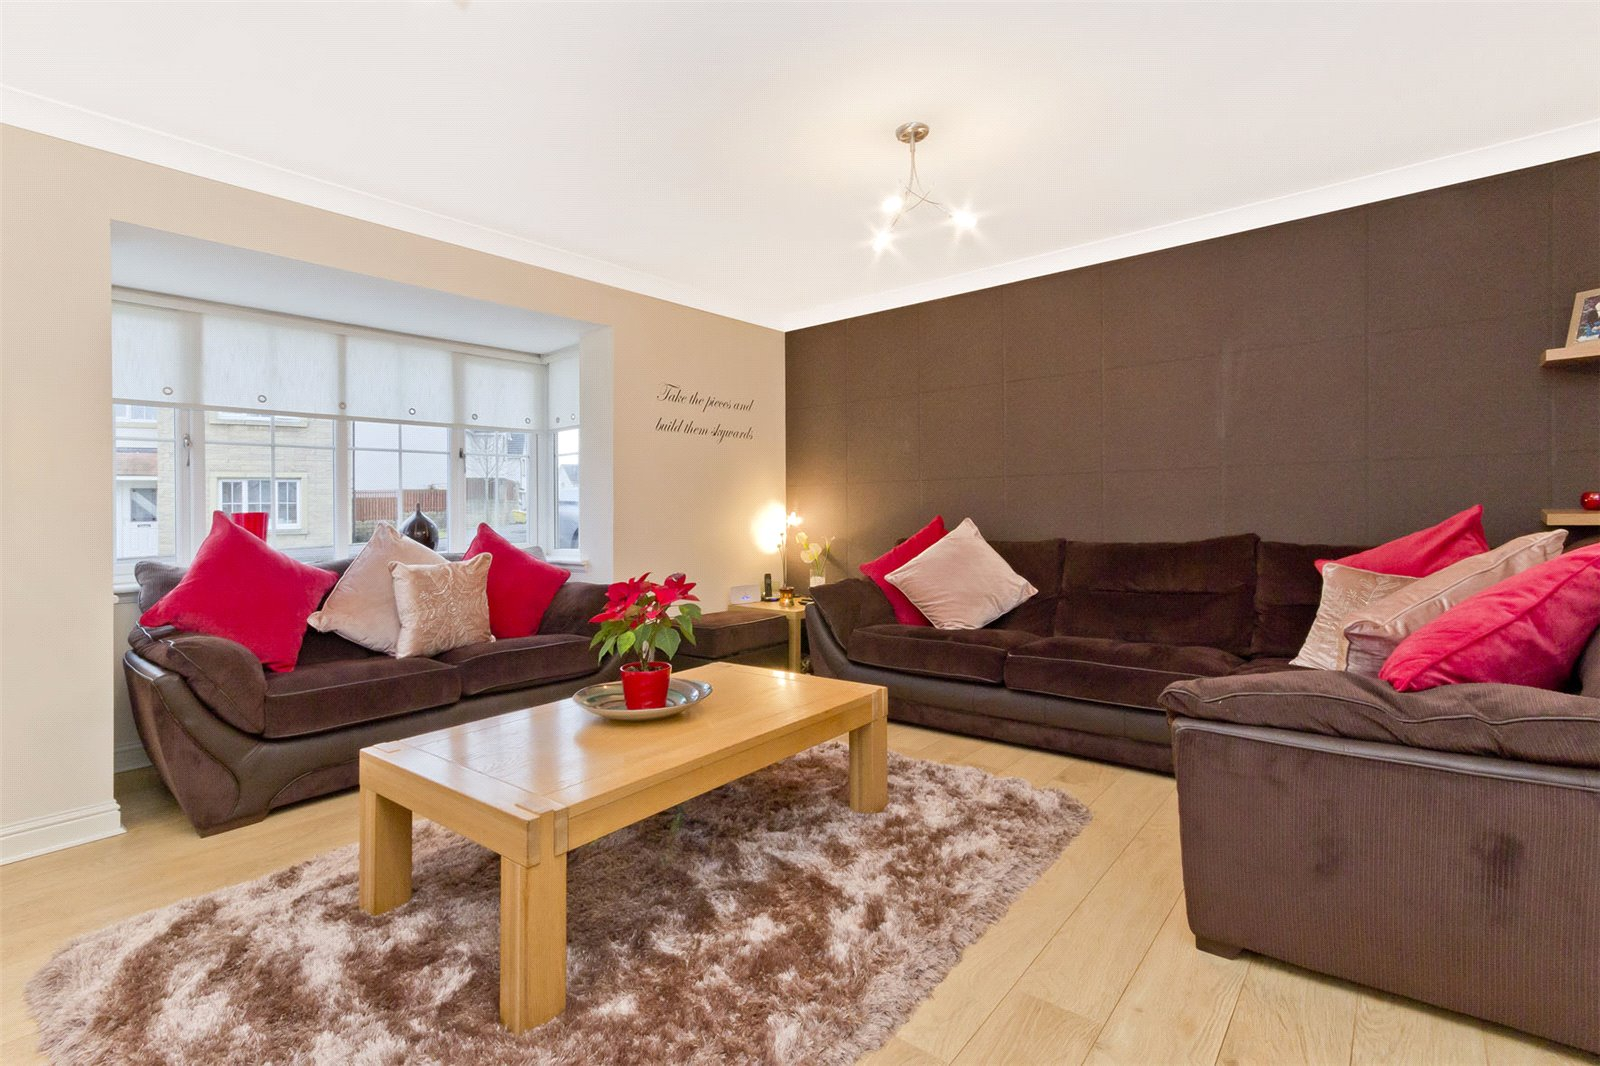 Four fantastic family homes located in and around Edinburgh